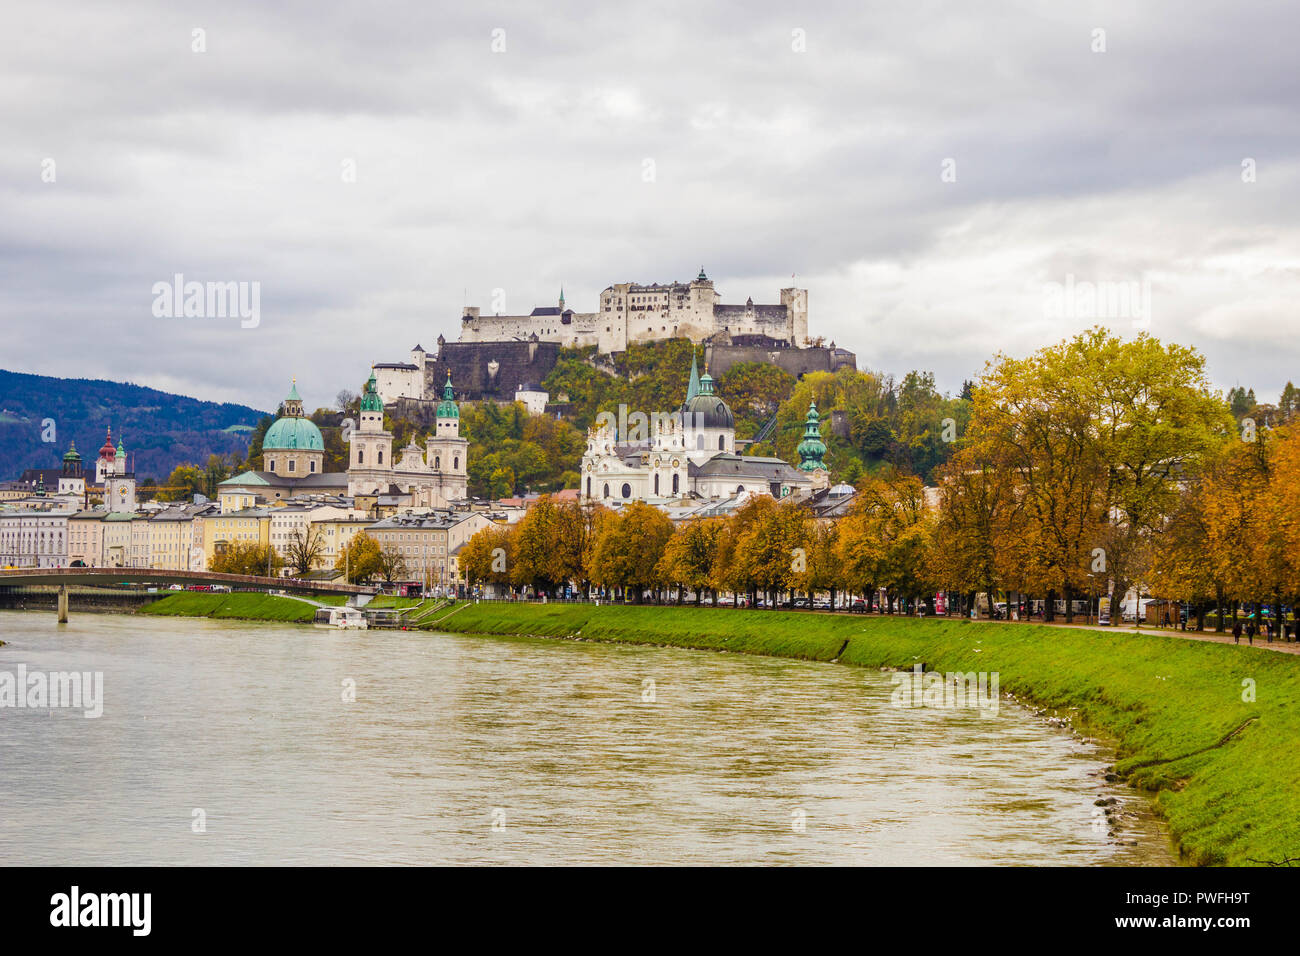 Famous classic view of historic old  city of Salzburg  with Festung Hohensalzburg. View of Salzburg over Salzach river on a cloudy autumn day. - Stock Image